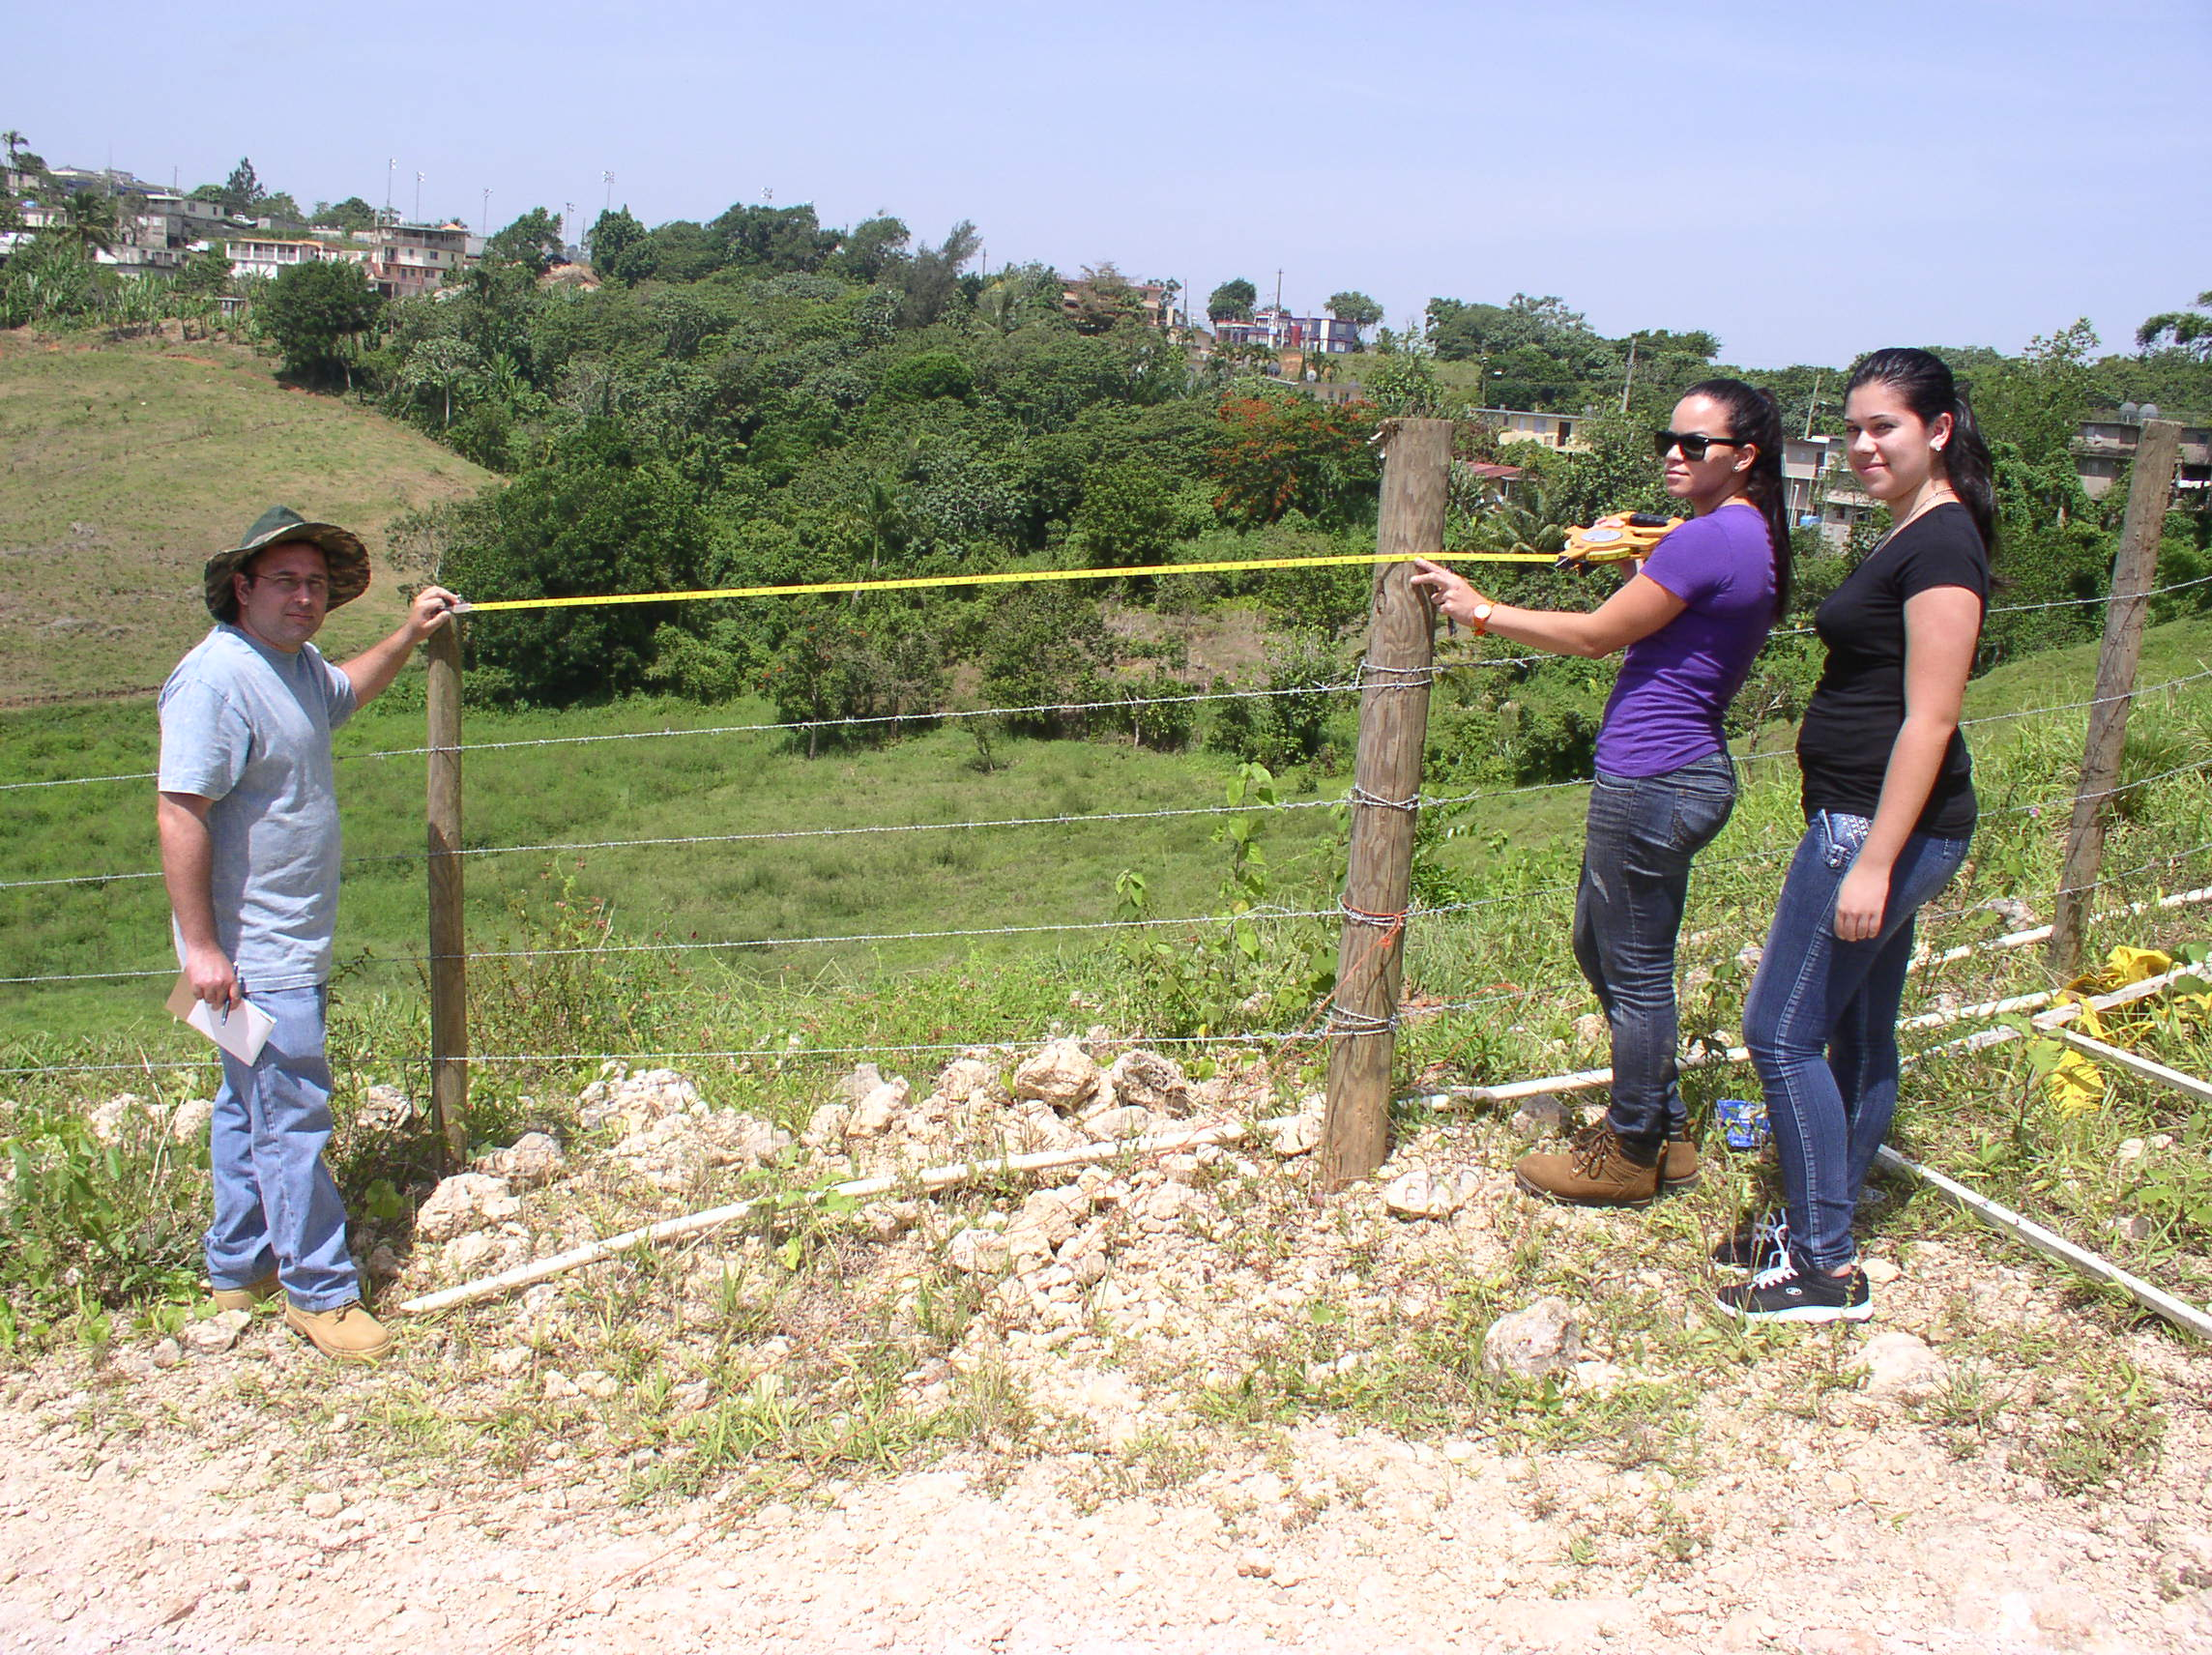 Utuado Field Office volunteers, Eliud Torres Vaquez (Earth Team [ET]), Erica M Claudio Rivera (Ag. student/ ET), and Gudianne Romero Mendez (Ag student/ ET) assist with pasture field fencing construction.